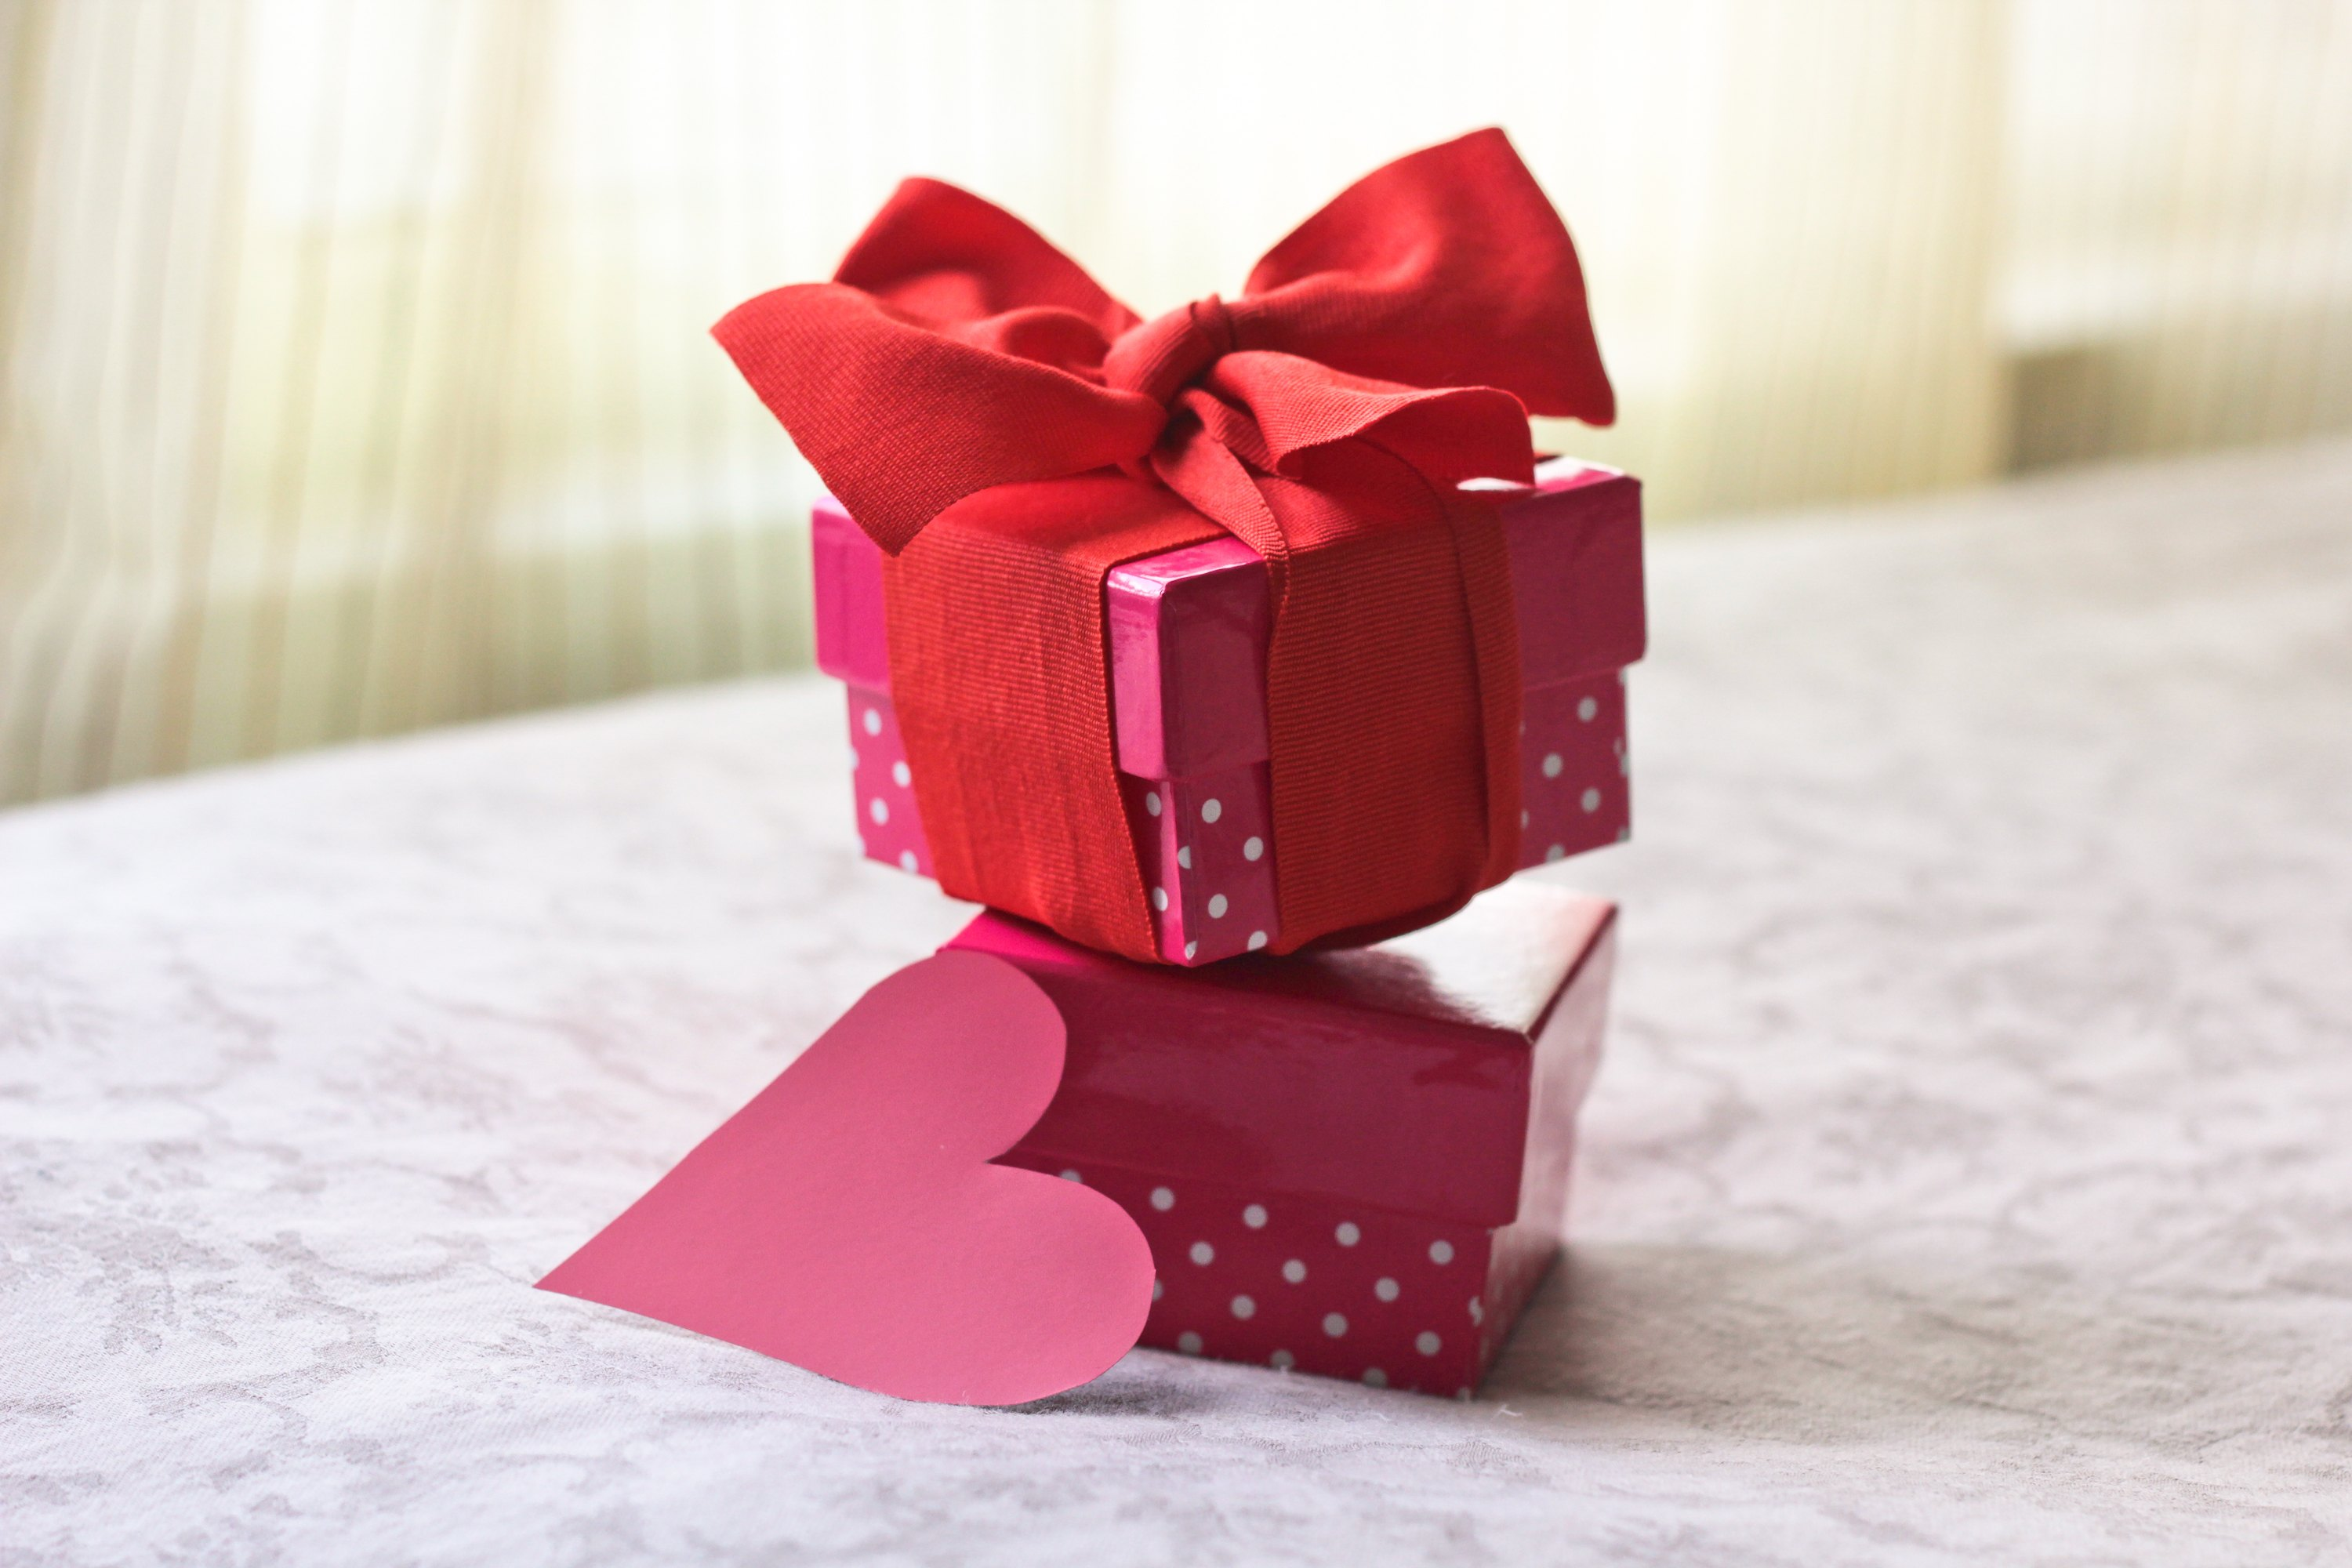 Romantic Homemade Gifts for a Boyfriend on His Birthday | eHow